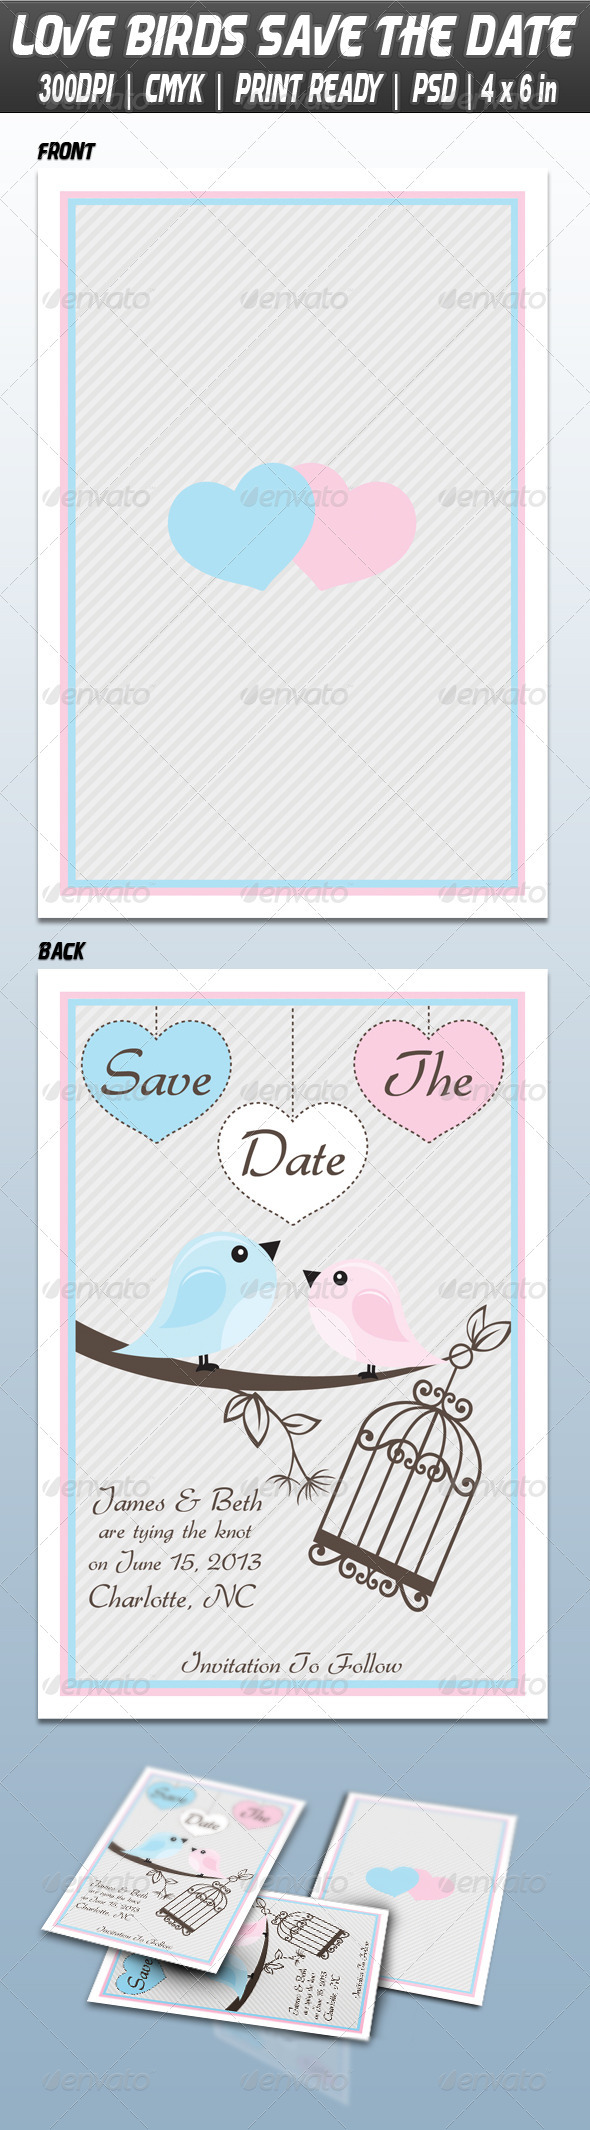 GraphicRiver Love Birds Save The Date 3833072